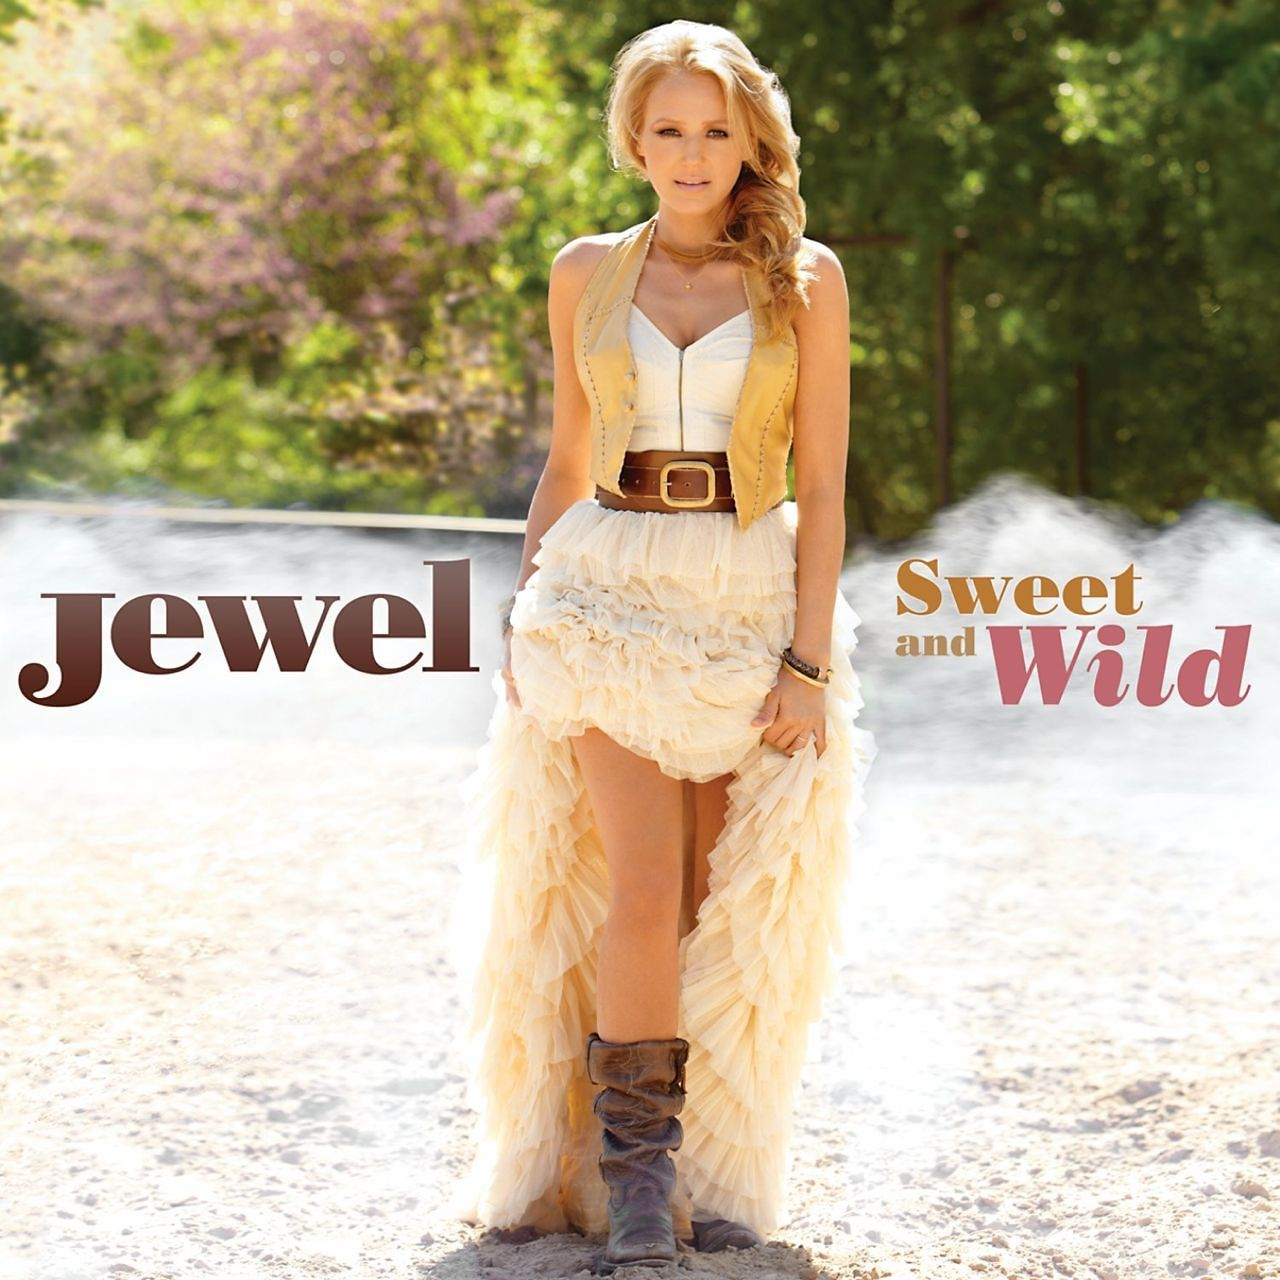 Jewel - Sweet And Wild album cover